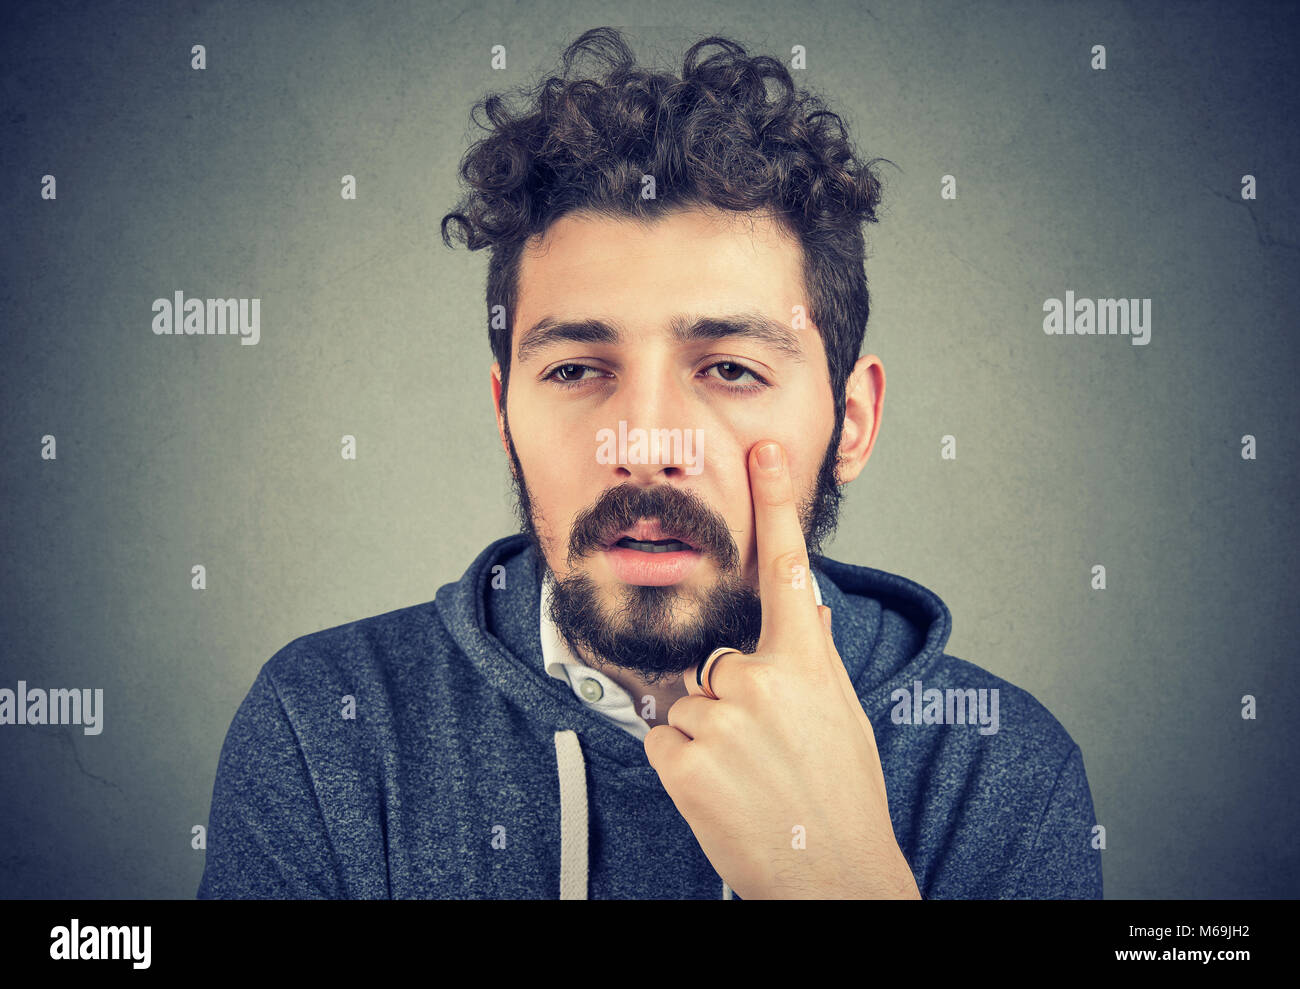 Young bearded man having puffy eyes and sick after sleepless night. - Stock Image